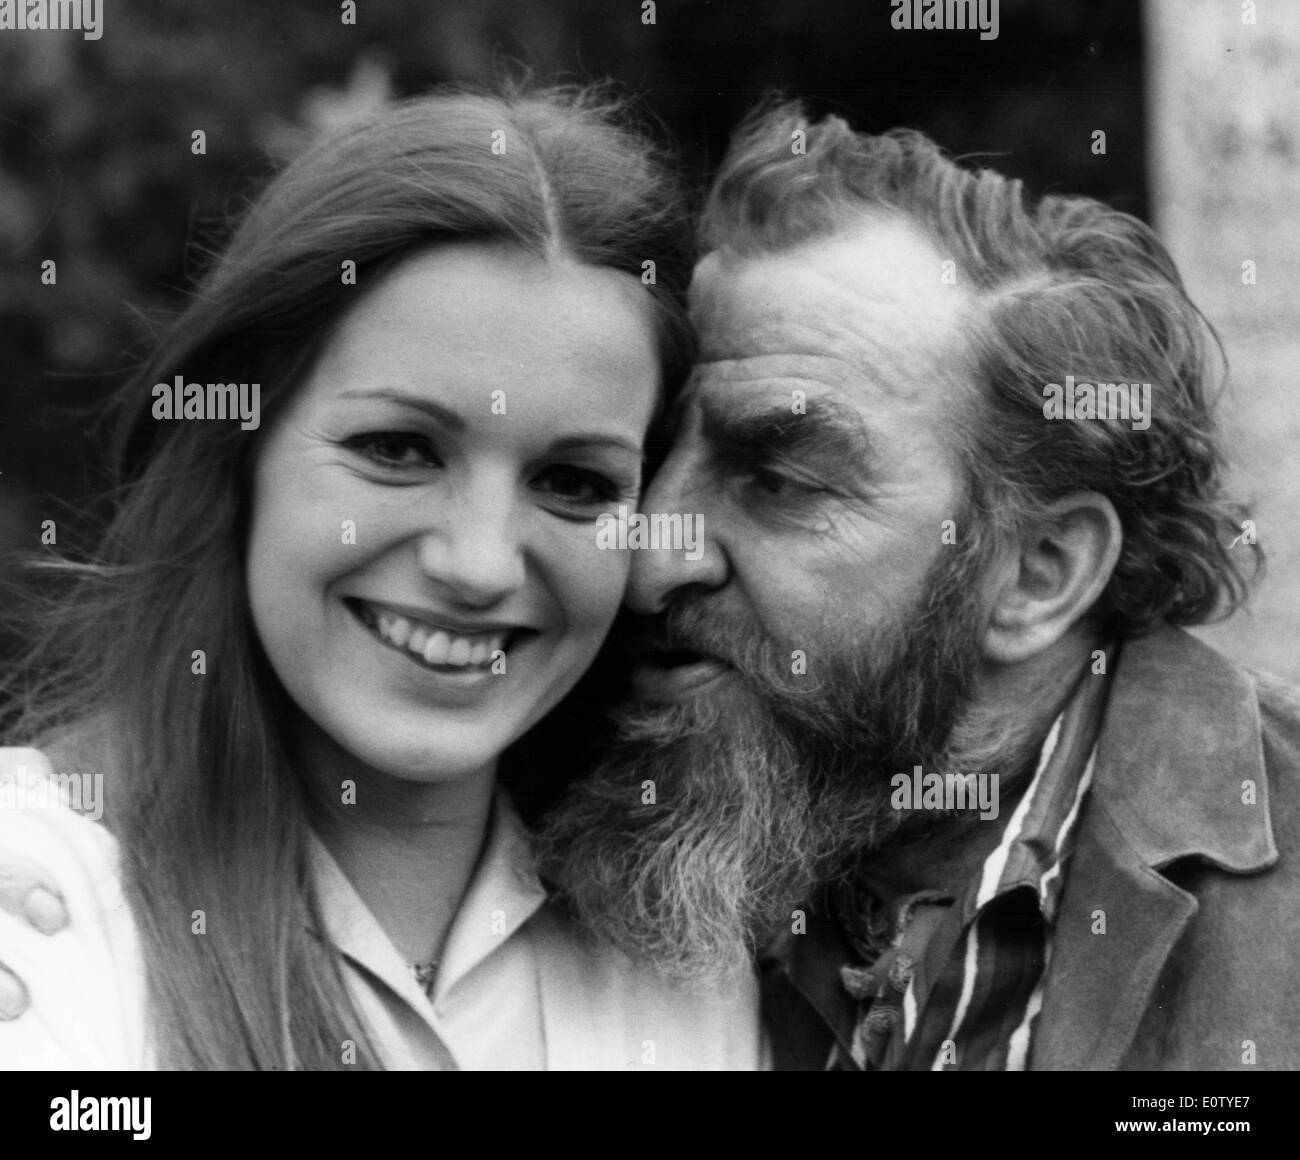 Actor Hugh Griffith hugging a young woman - Stock Image